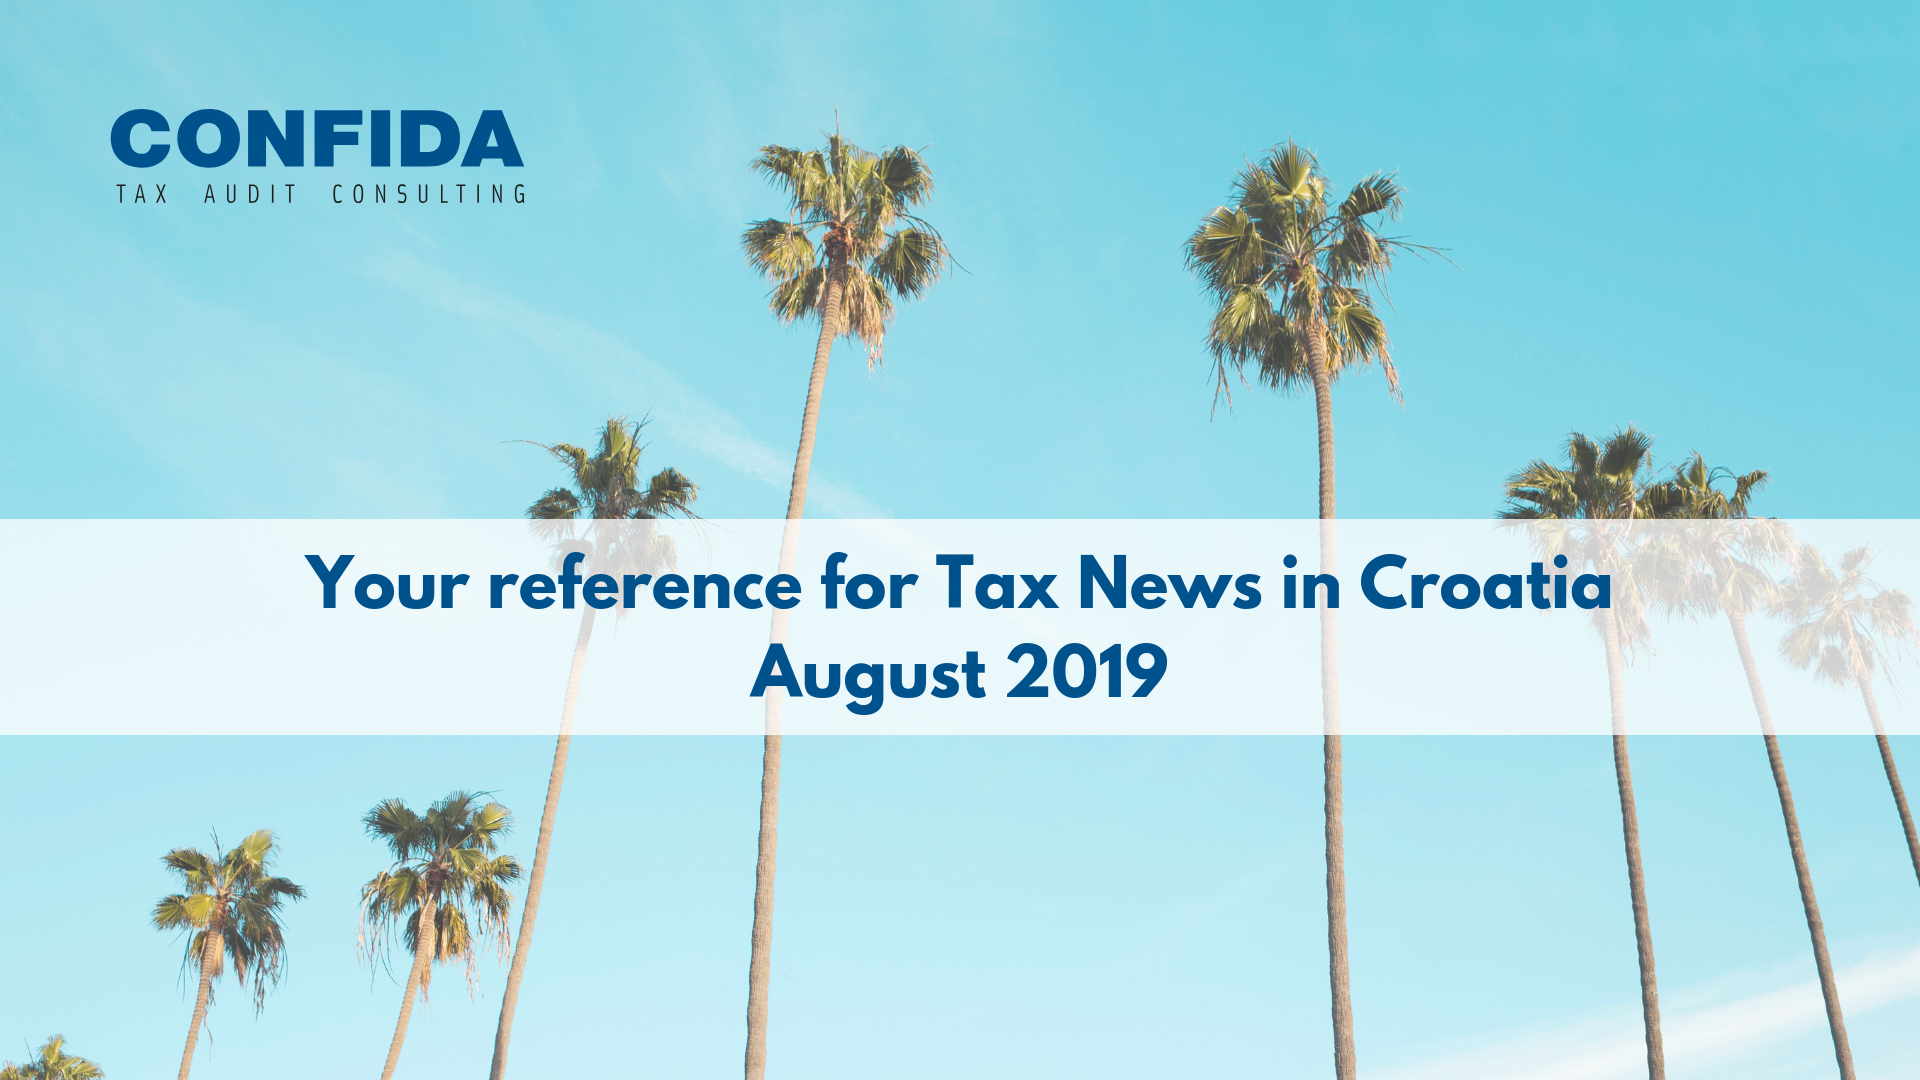 August 2019: Your reference for Tax News in Croatia